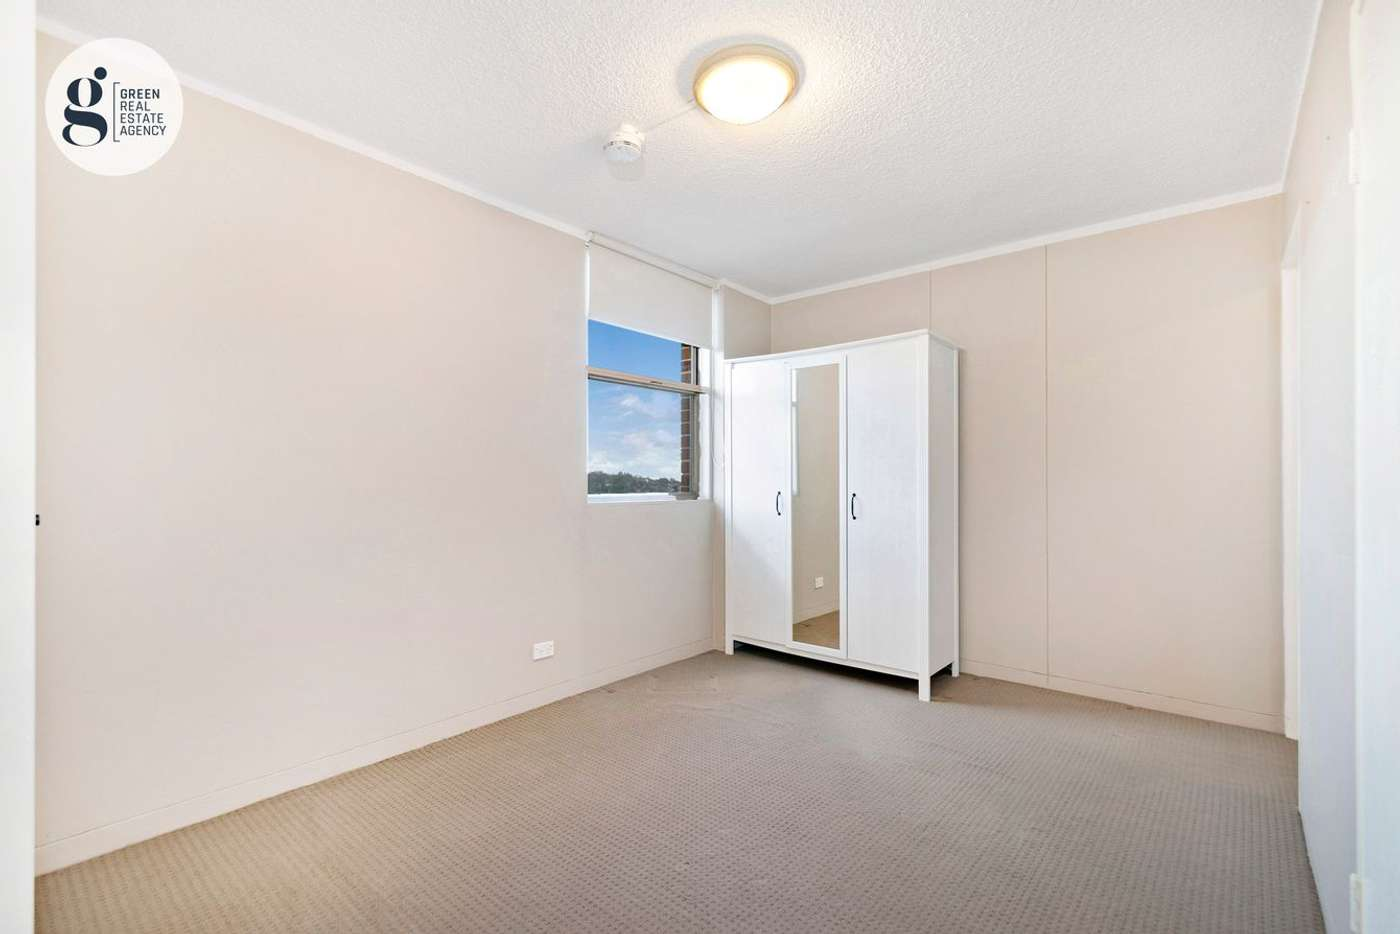 Sixth view of Homely apartment listing, 23/57-61 West Parade, West Ryde NSW 2114